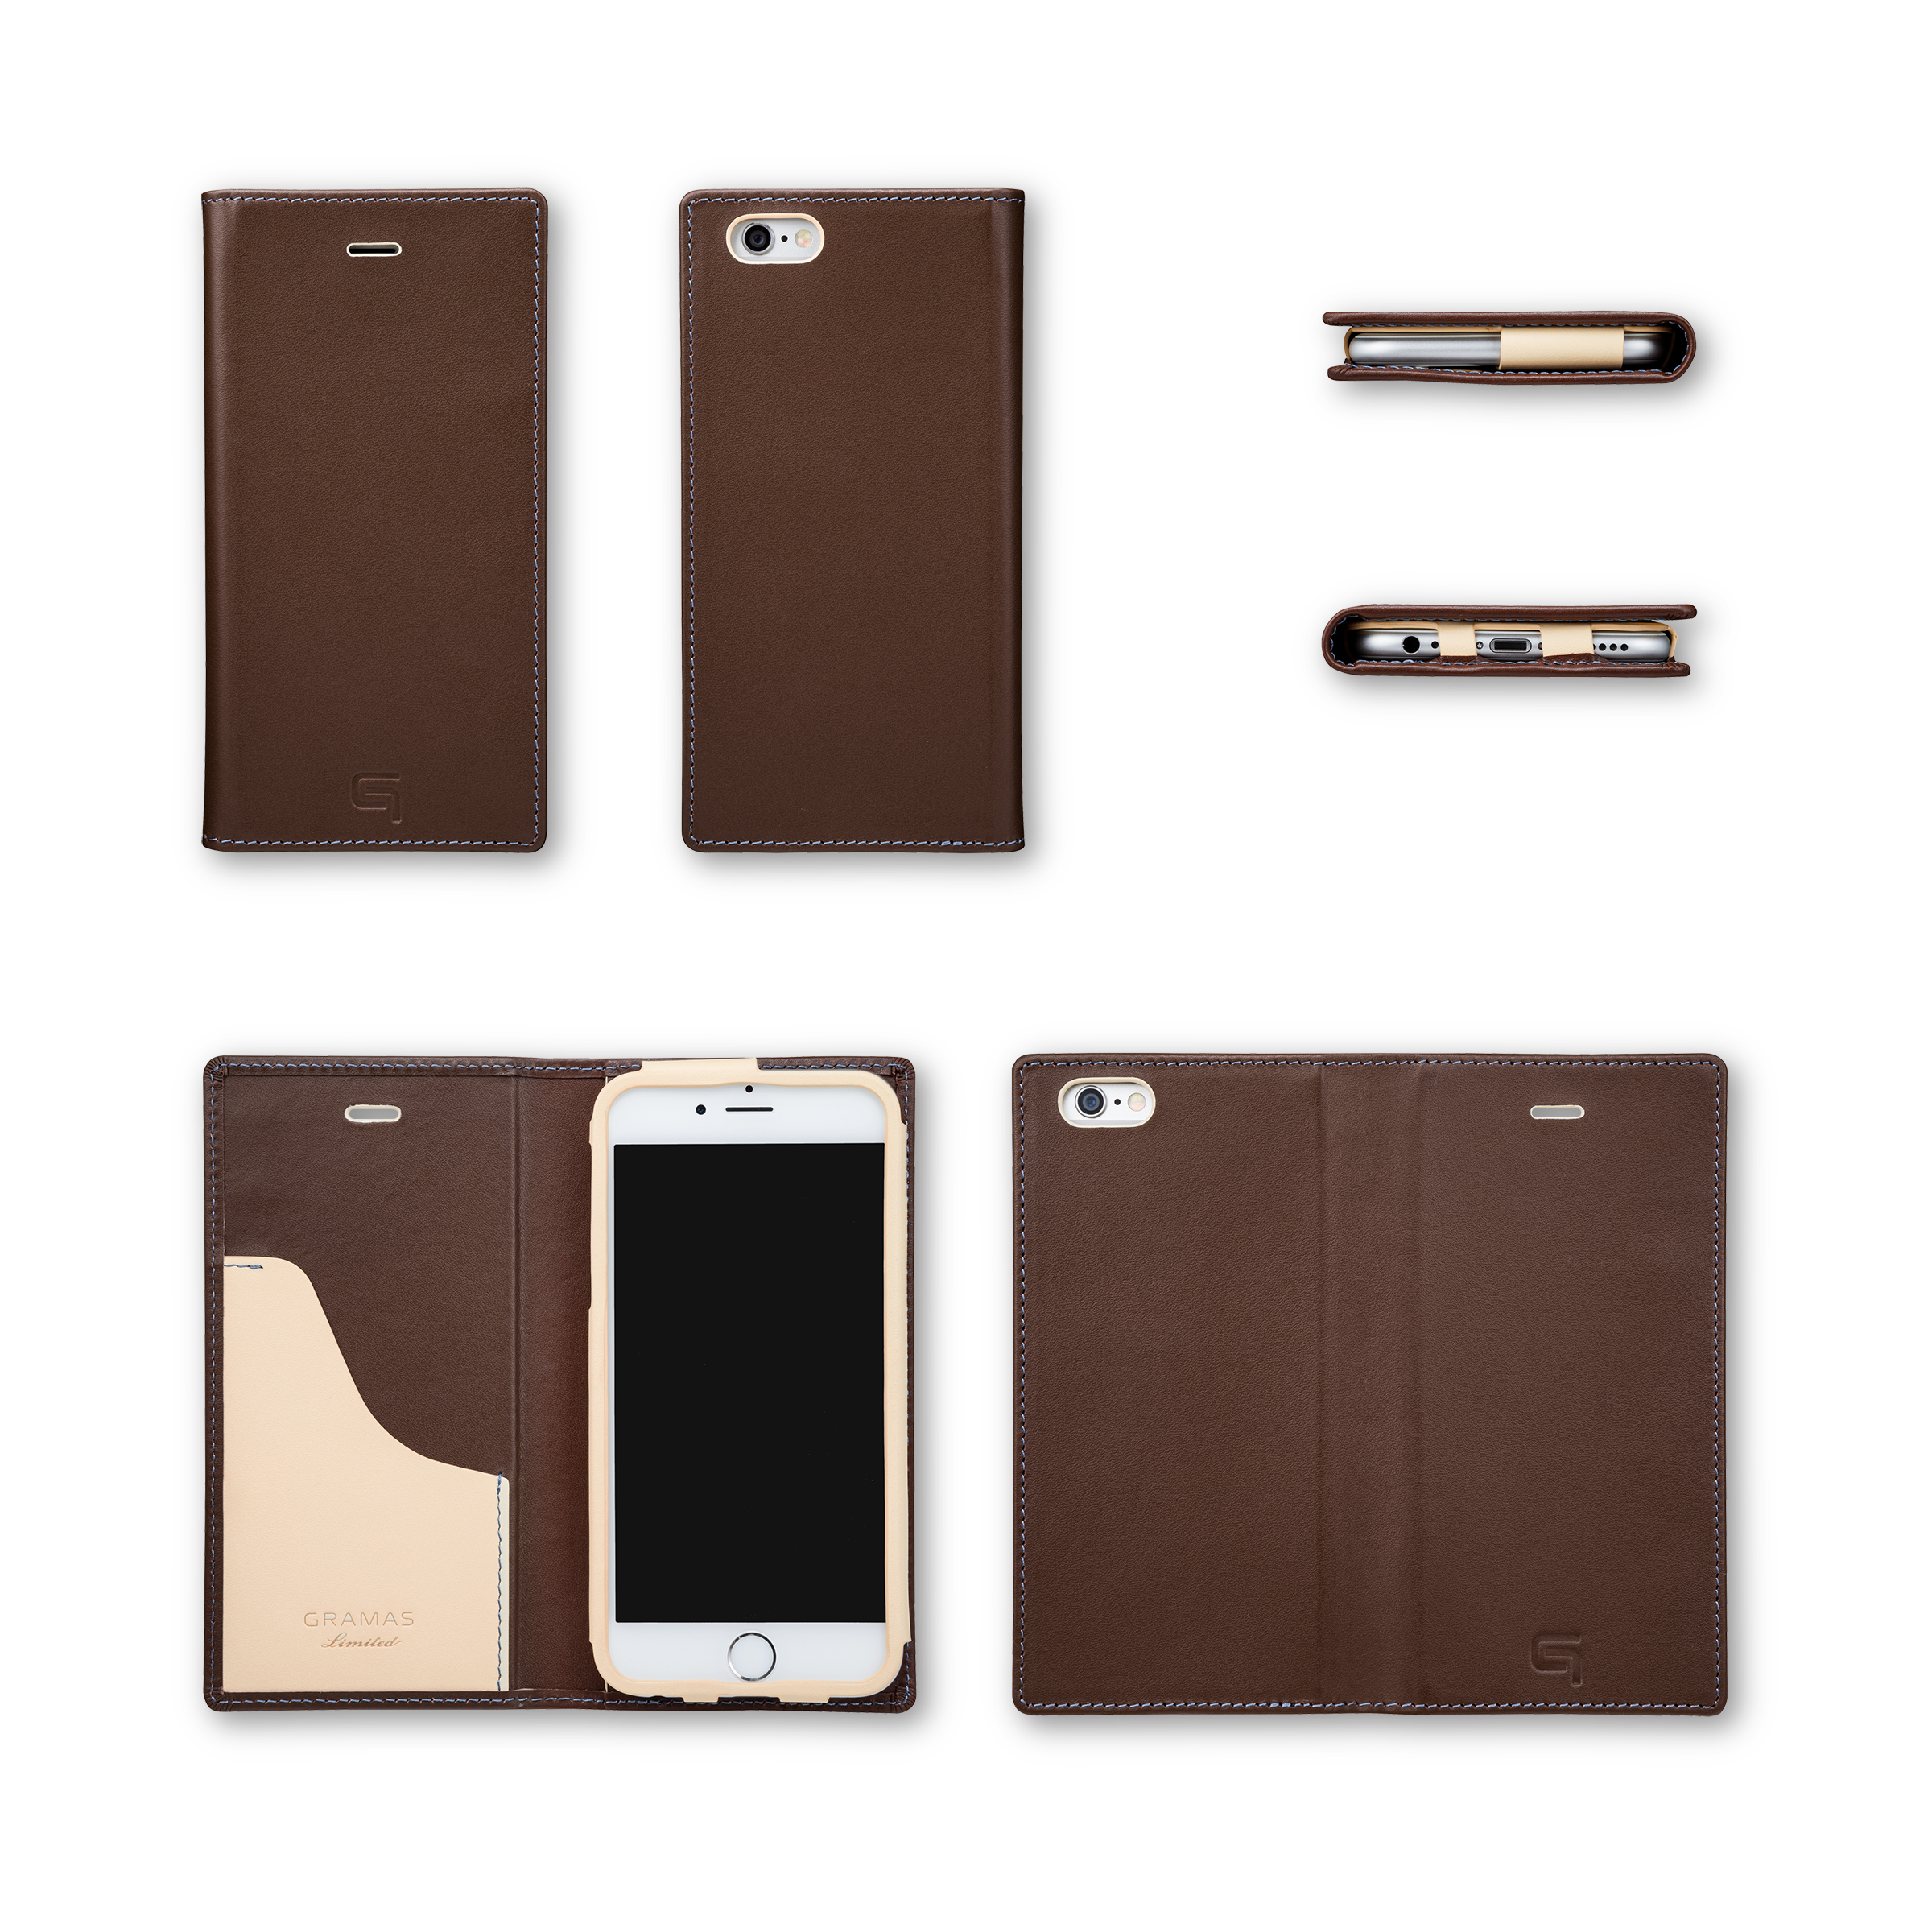 GRAMAS Full Leather Case スマホ堂 Limited for iPhone6s/6 Brown×Cream×Light Blue - 画像5